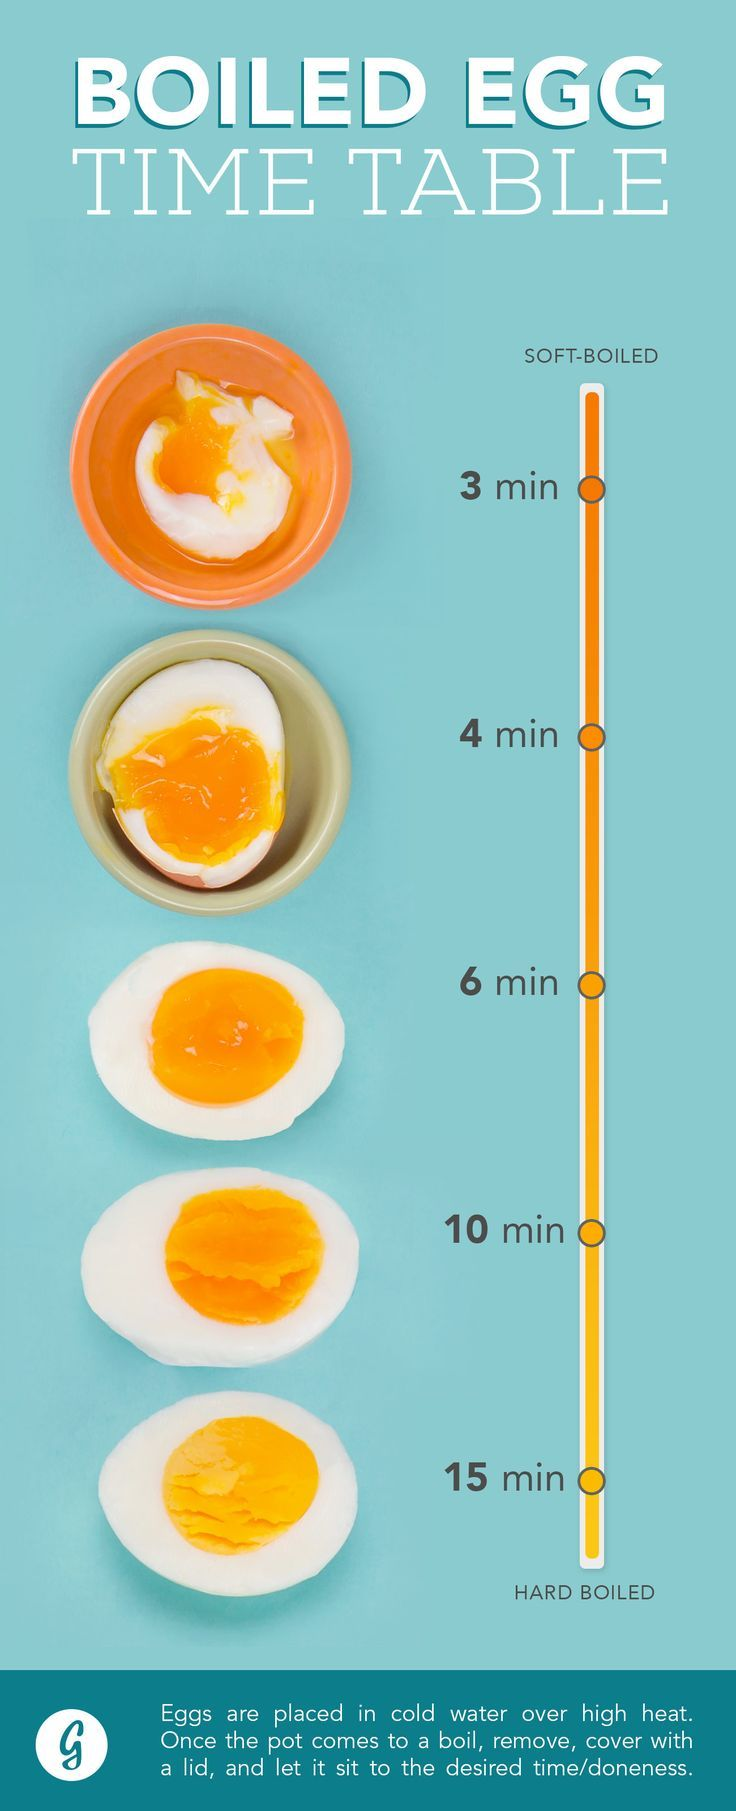 How to Make the Perfect Boiled Egg Every Time #foodtips